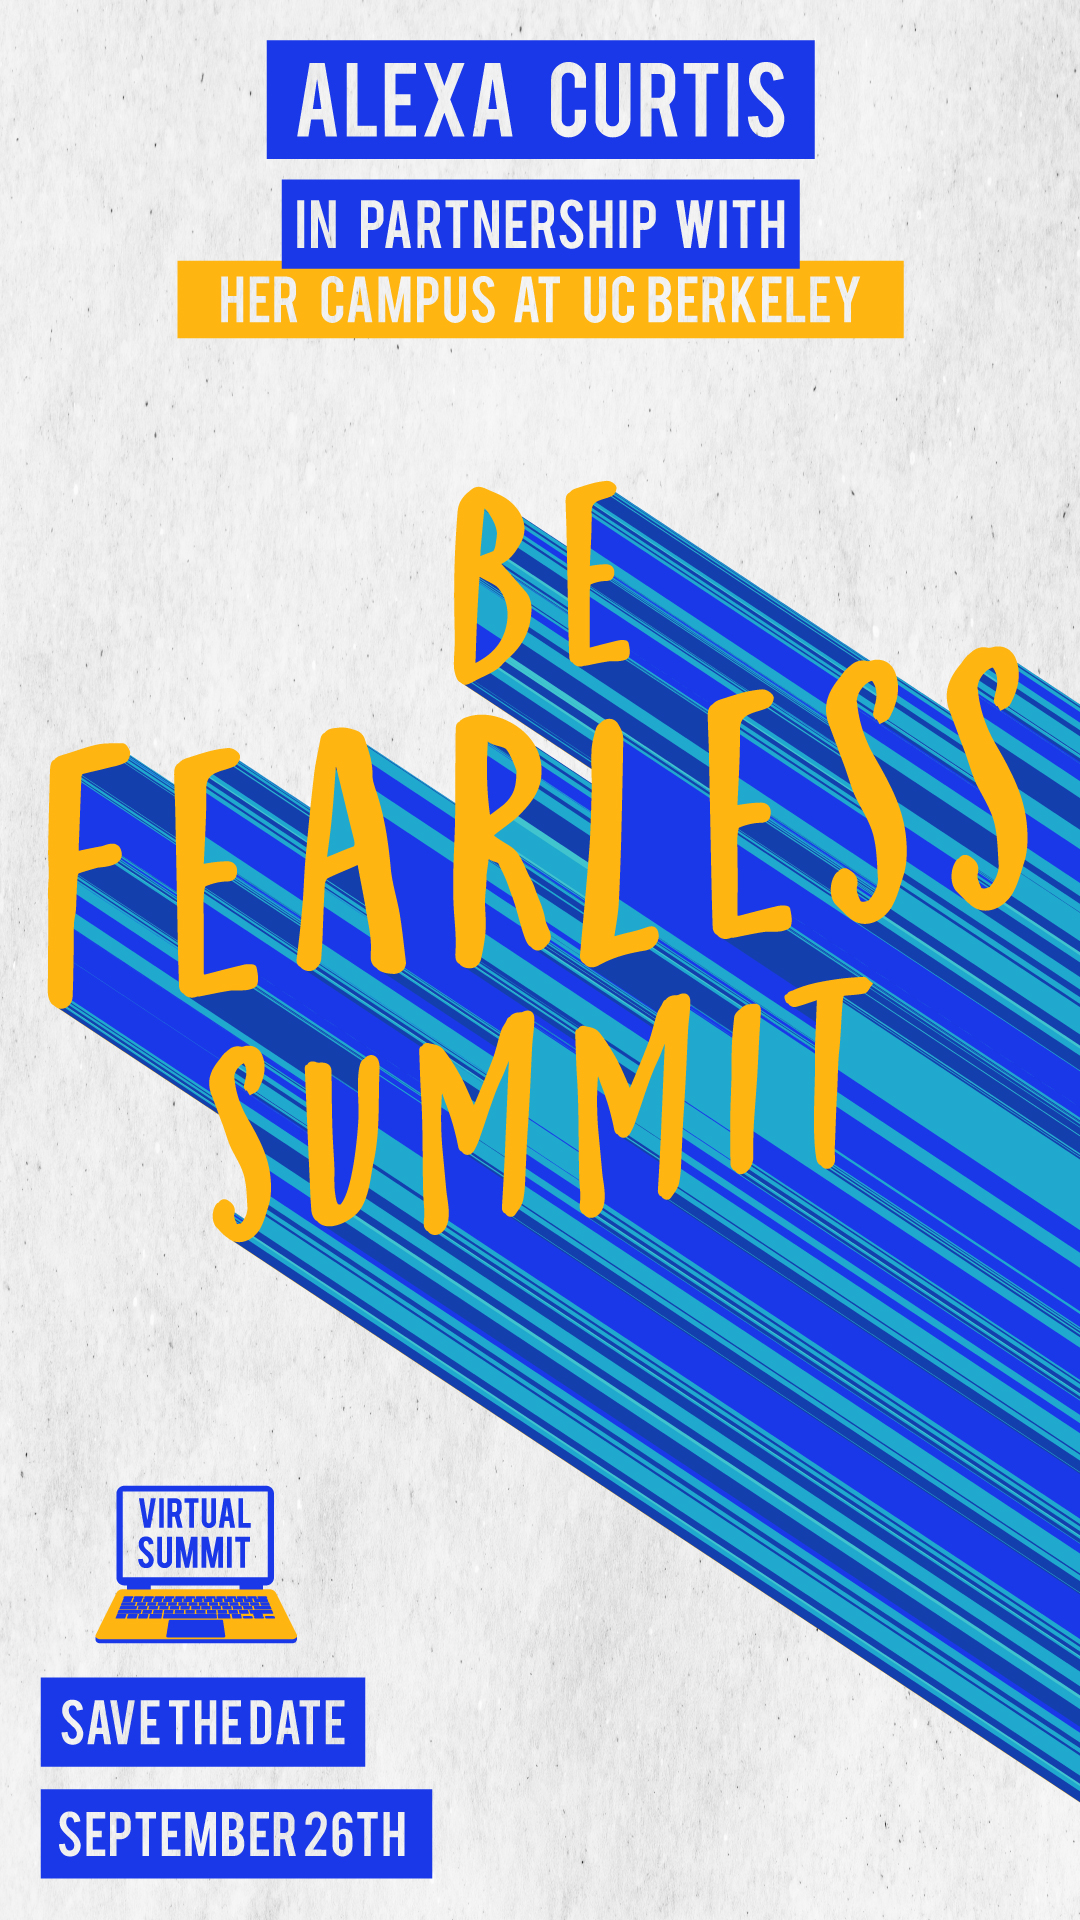 THE 2020 BE FEARLESS SUMMIT GOES VIRTUAL